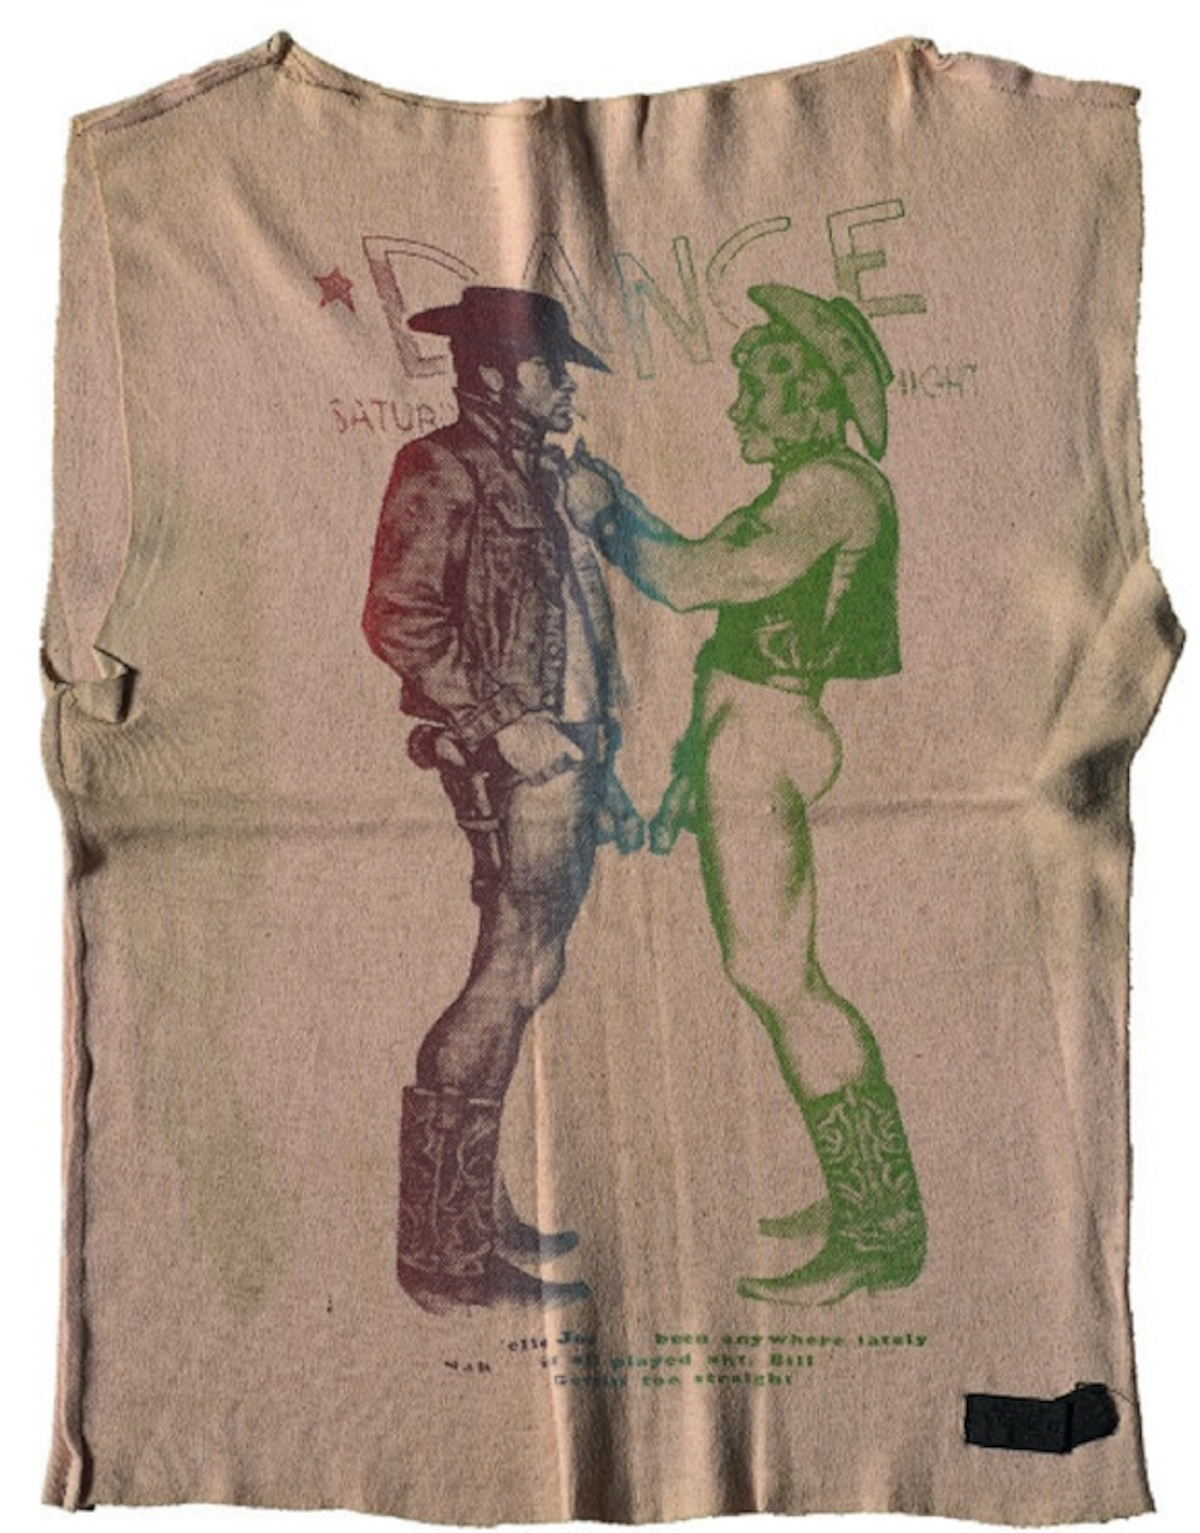 Seditionaries Cowboys t-shirt dating from 1976 sold at auction in 2013